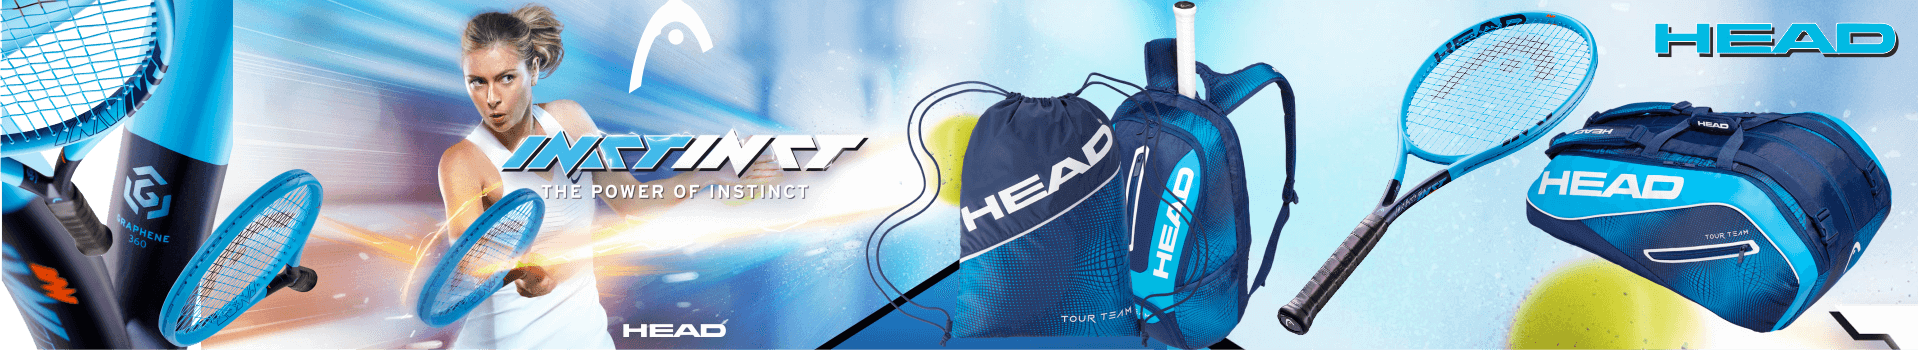 TENNIS CORNER - HEAD INSTINCT 2019